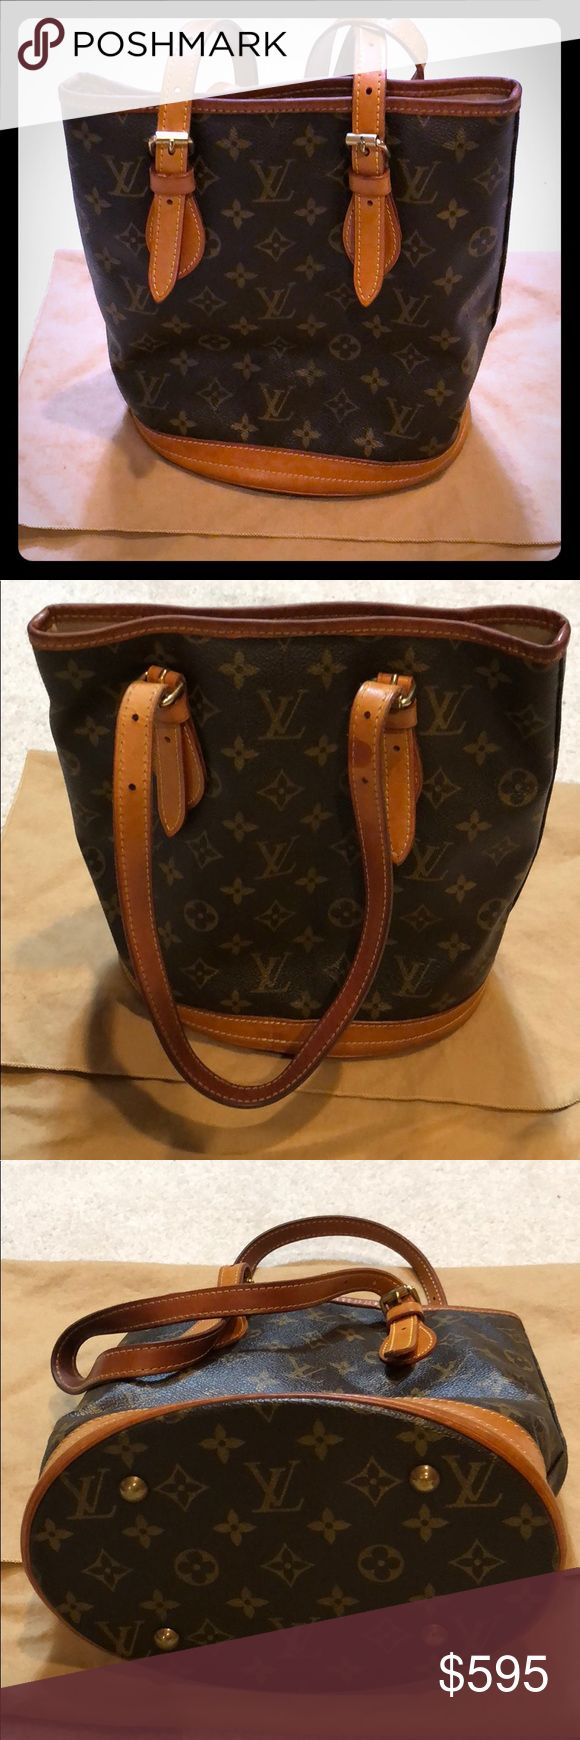 *ORIGINAL* LOUIS VUITTON Petit Bucket Bag original, 100% authentic, bought from LV store in San Diego, California • used & sold as is • willing to post more photos upon request • includes mini pouch attached to bag via chain • comes in it's original dust bag • pet/smoke free home • feel free to make bundles & reasonable offers :) Louis Vuitton Bags Shoulder Bags